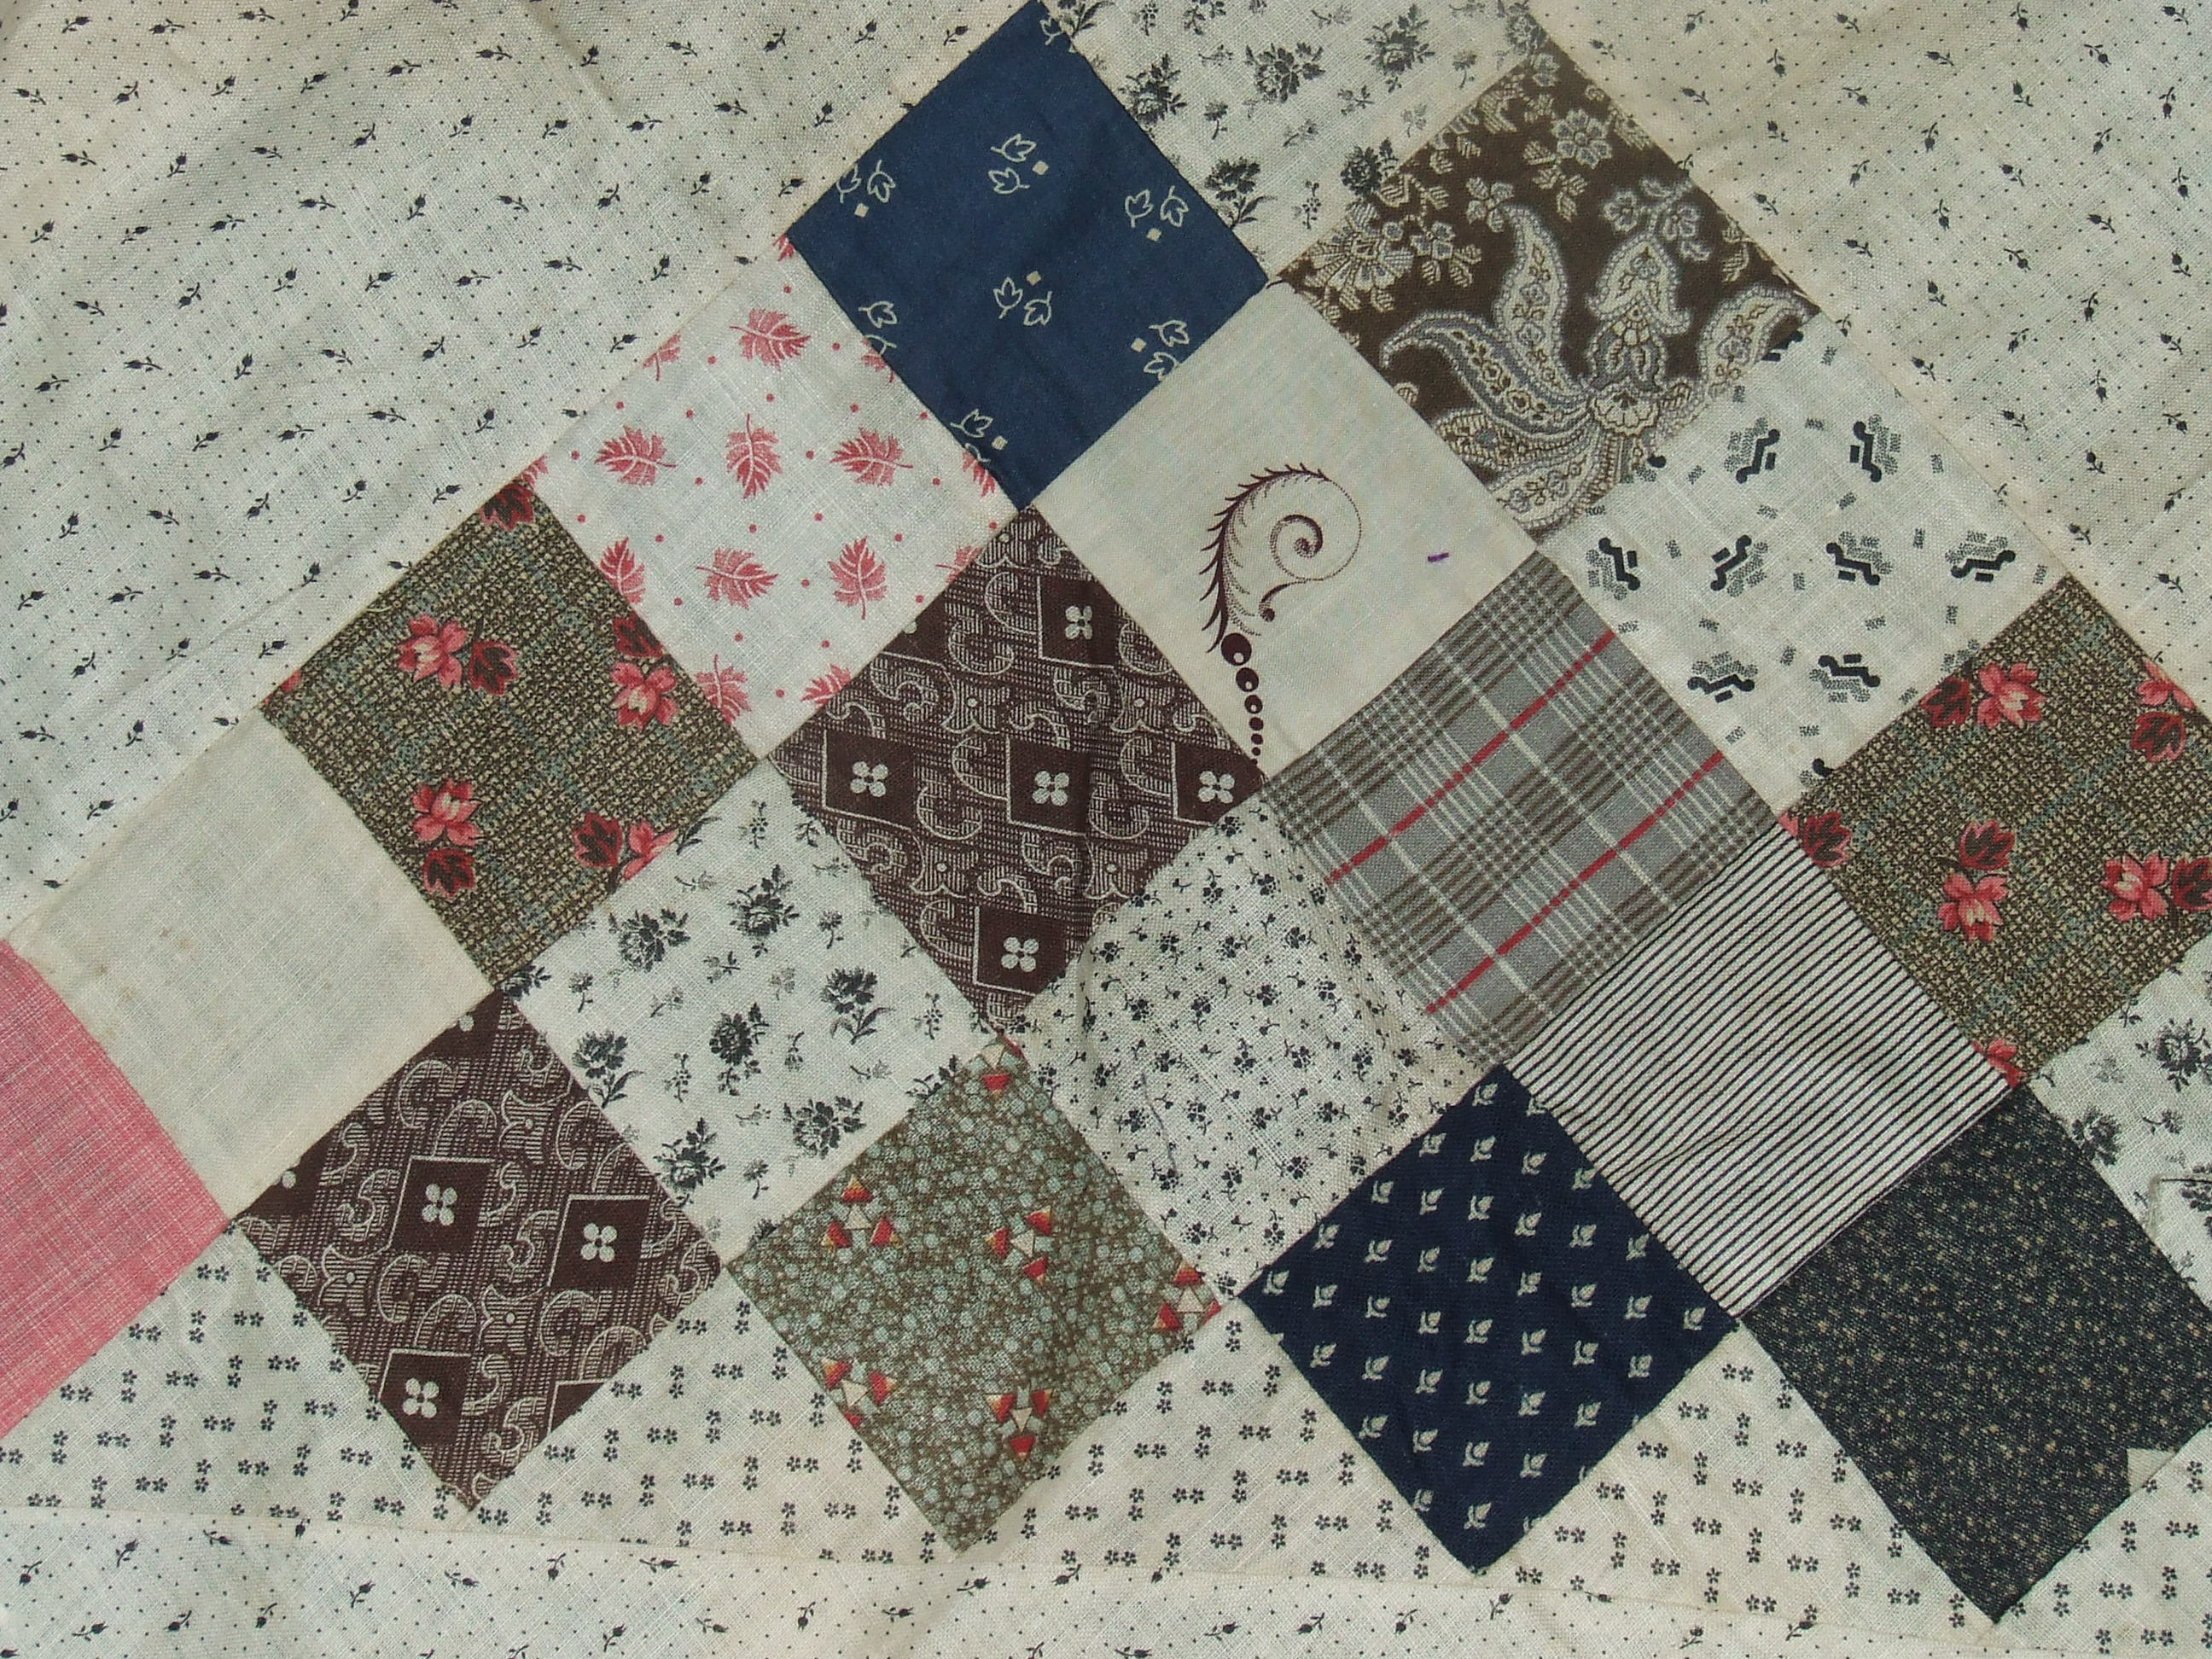 Ongoing Quilt Projects | Tim Latimer - Quilts etc